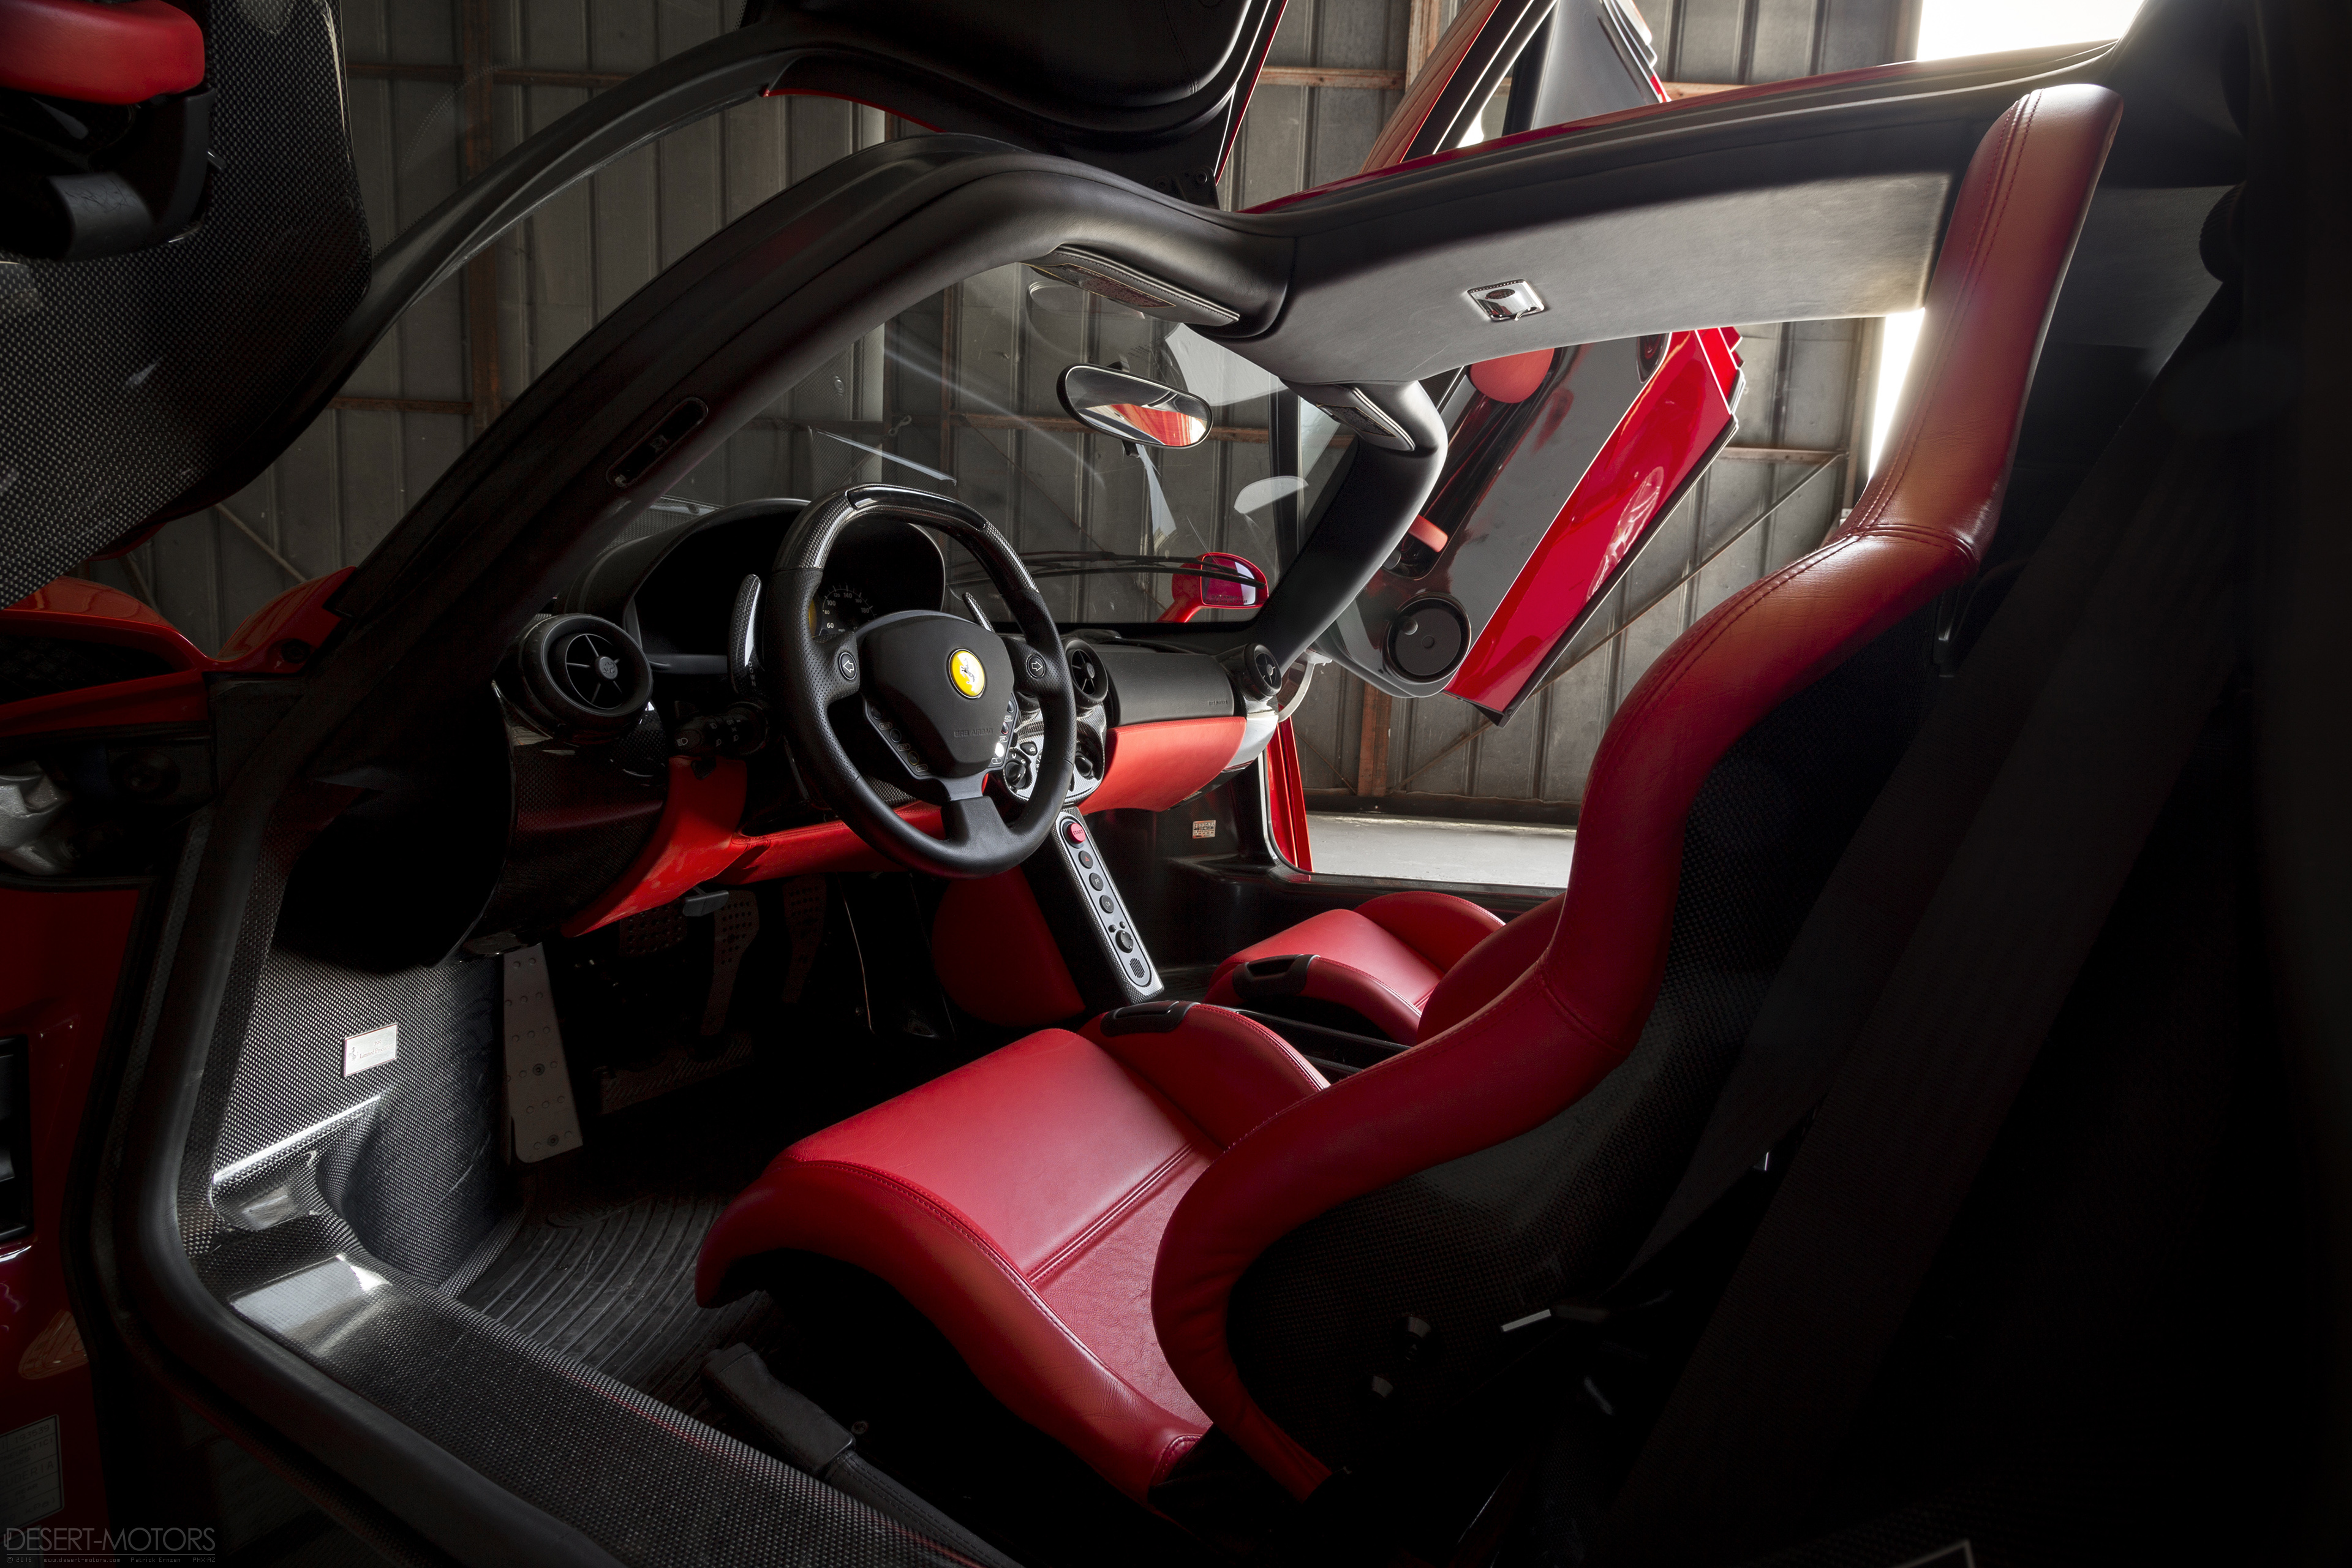 Enzo Interieur Ferrari Enzo One Of The Best Interior Of All Time Imo Os Oc